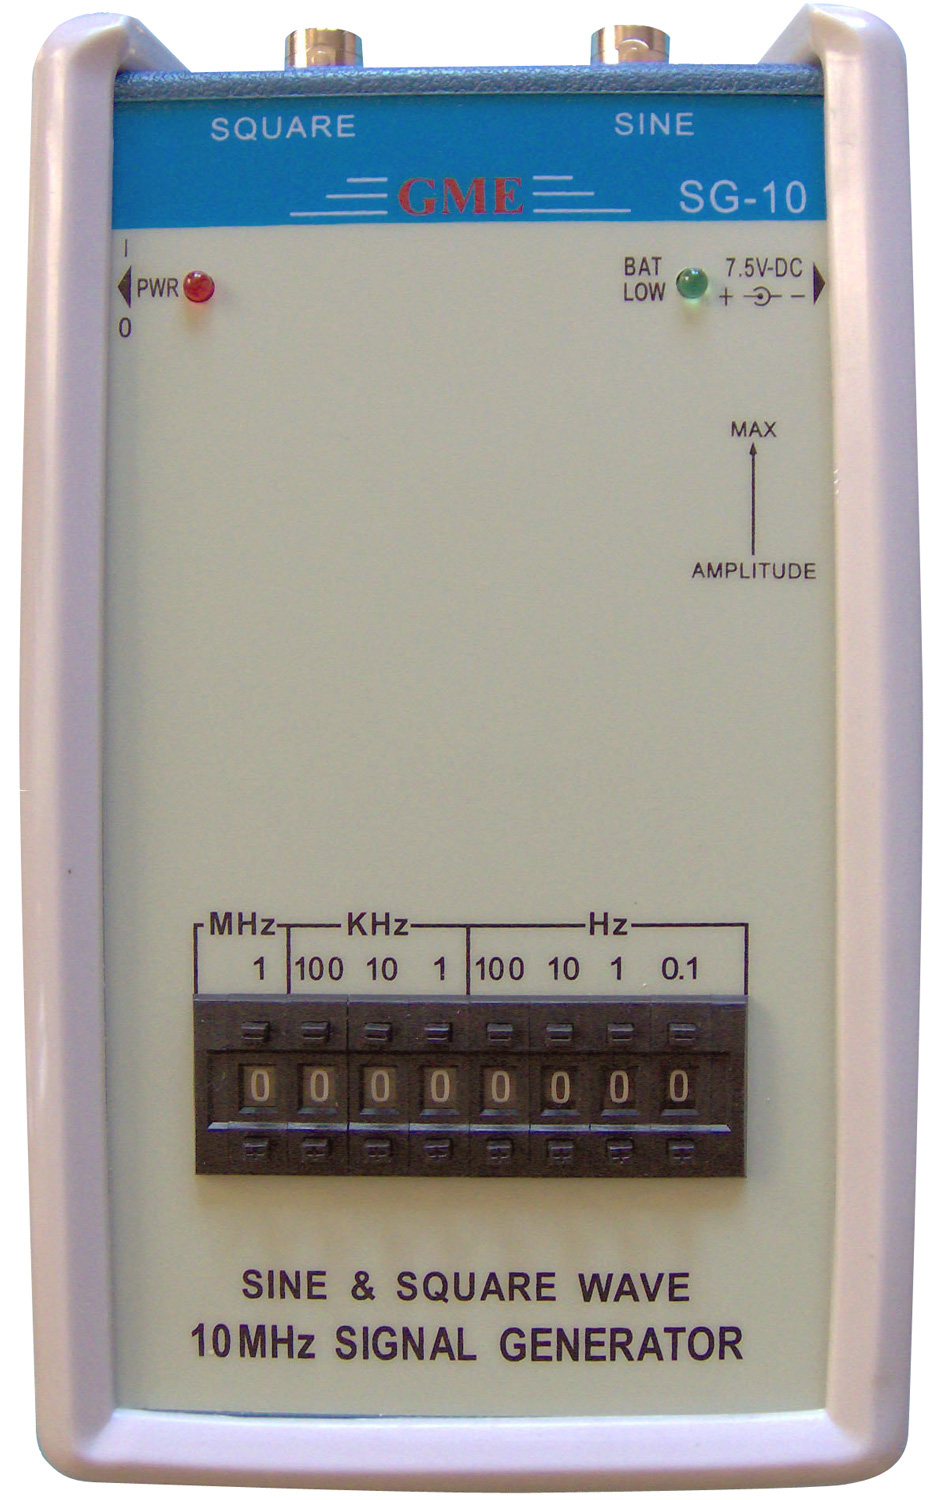 Handheld 10MHz Signal Generator With 2 BNC Output Connectors GME-SG10